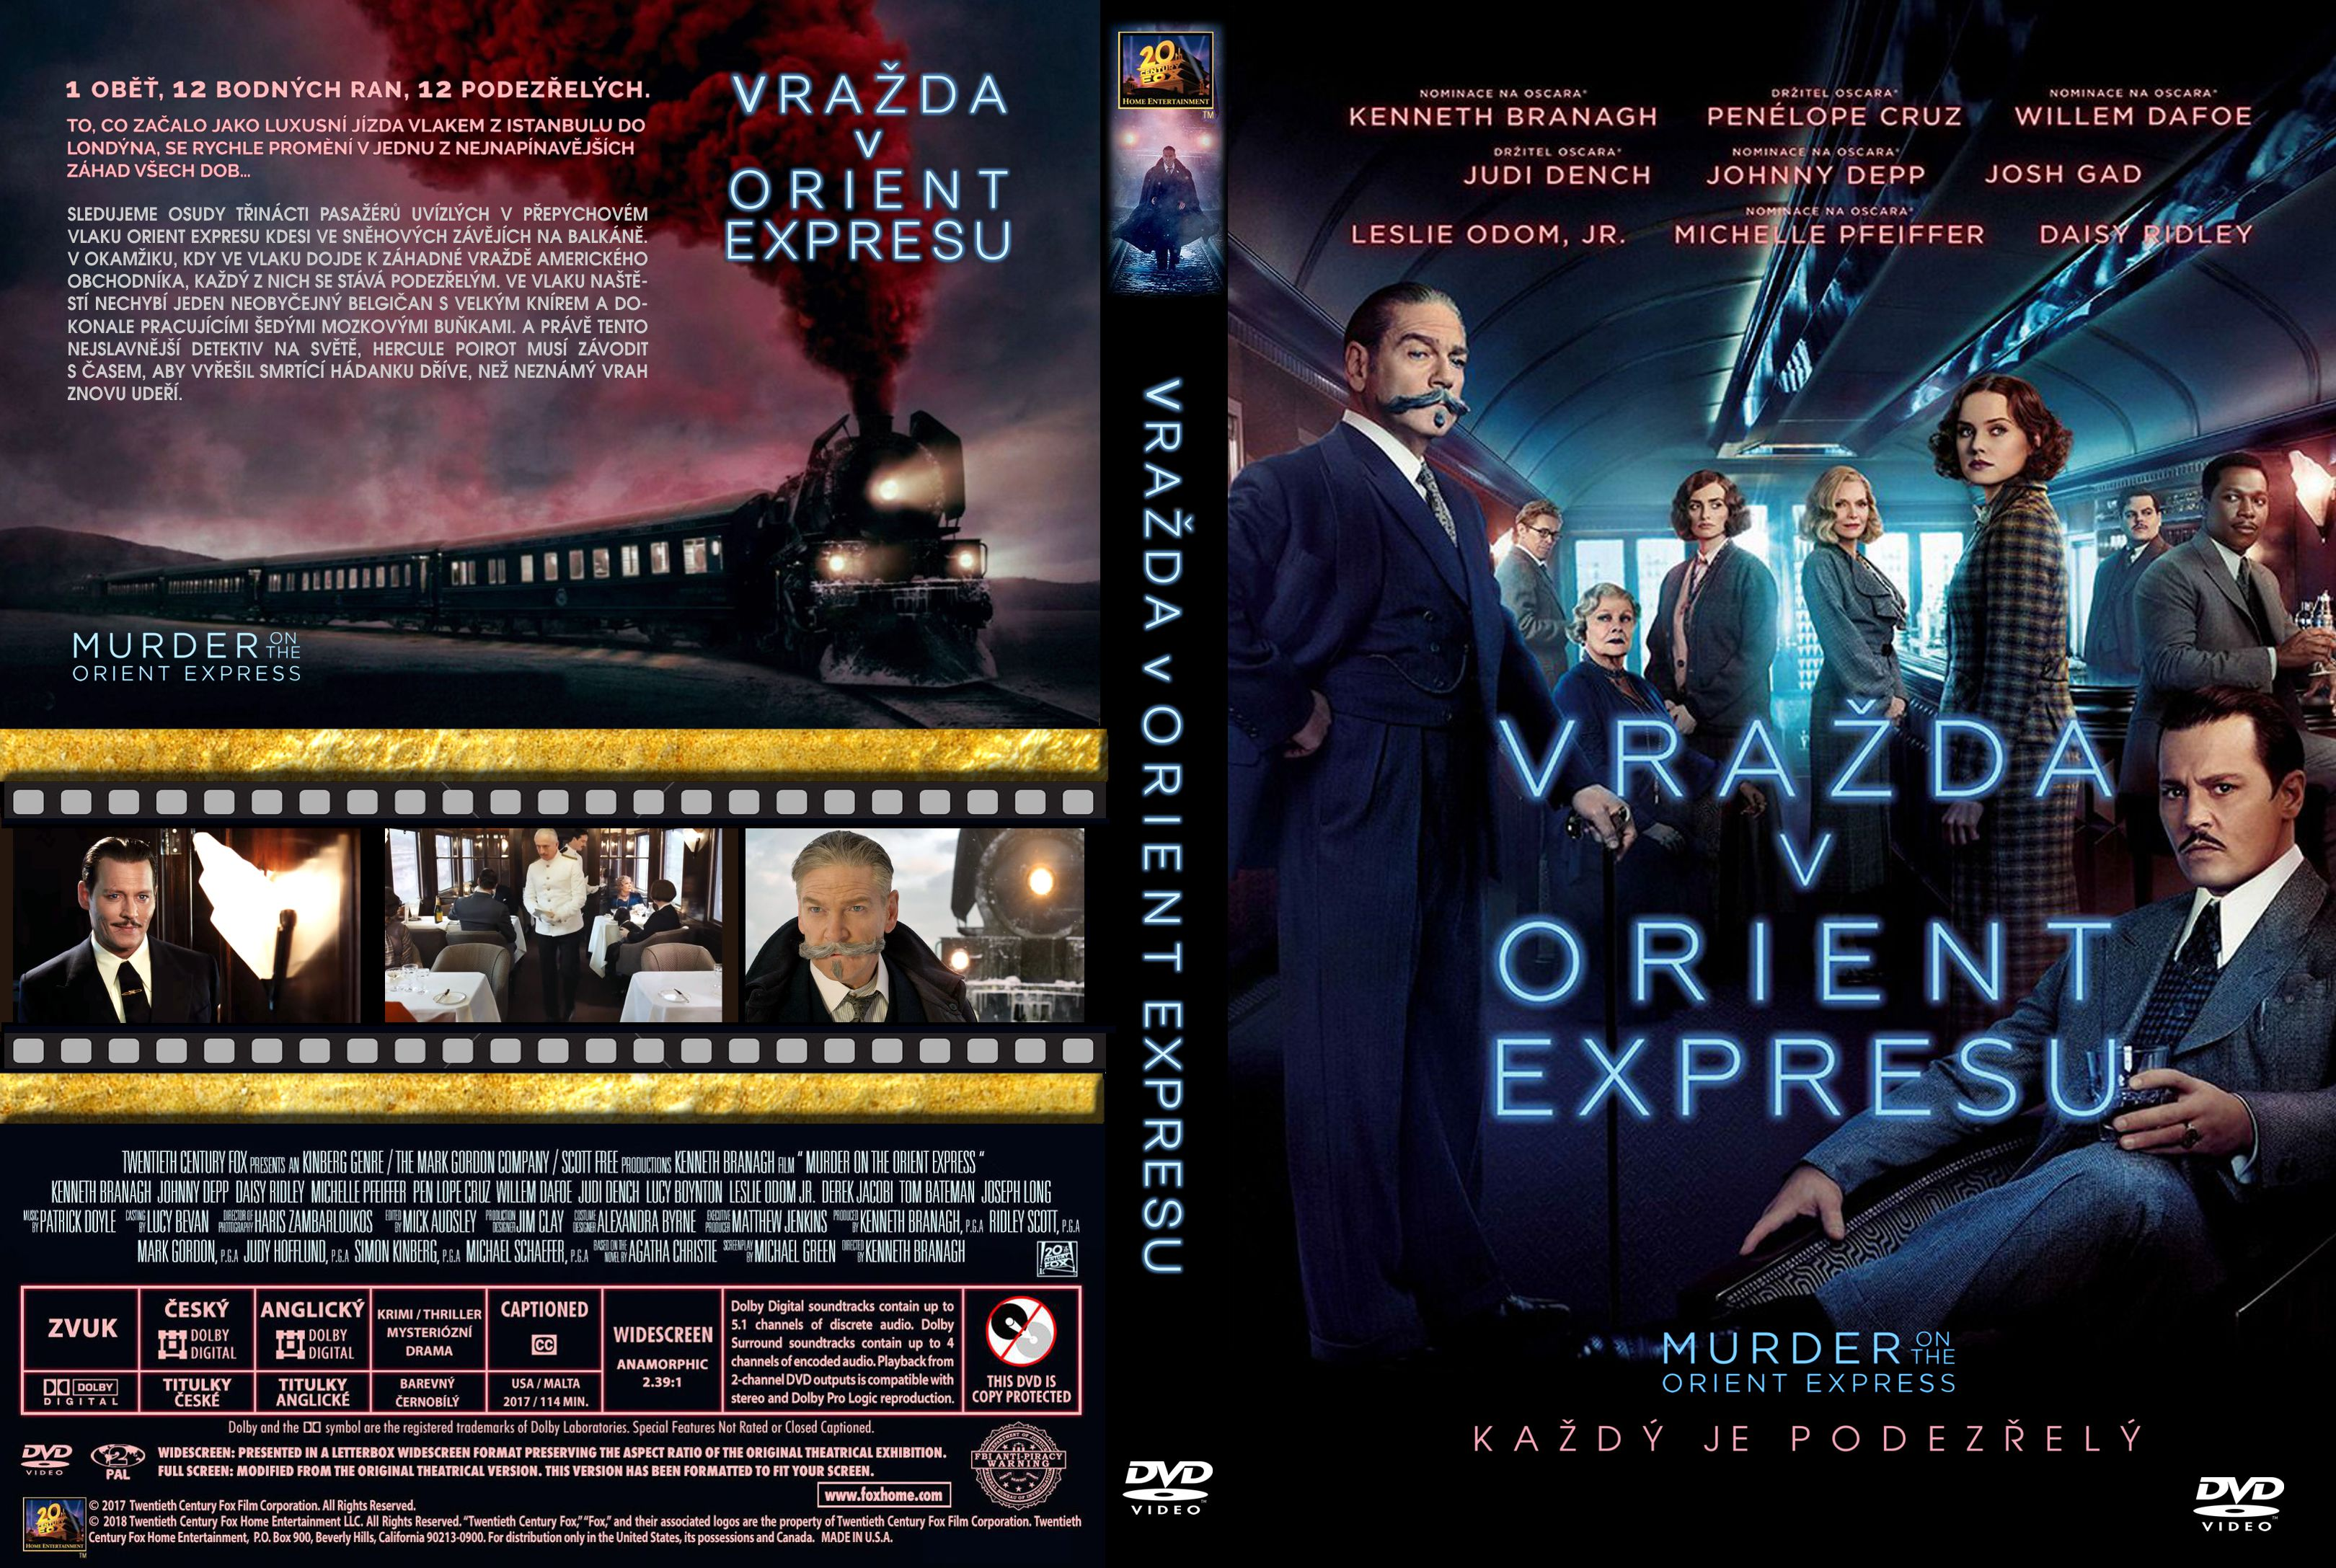 Covers Box Sk Murder On The Orient Express 2017 High Quality Dvd Blueray Movie